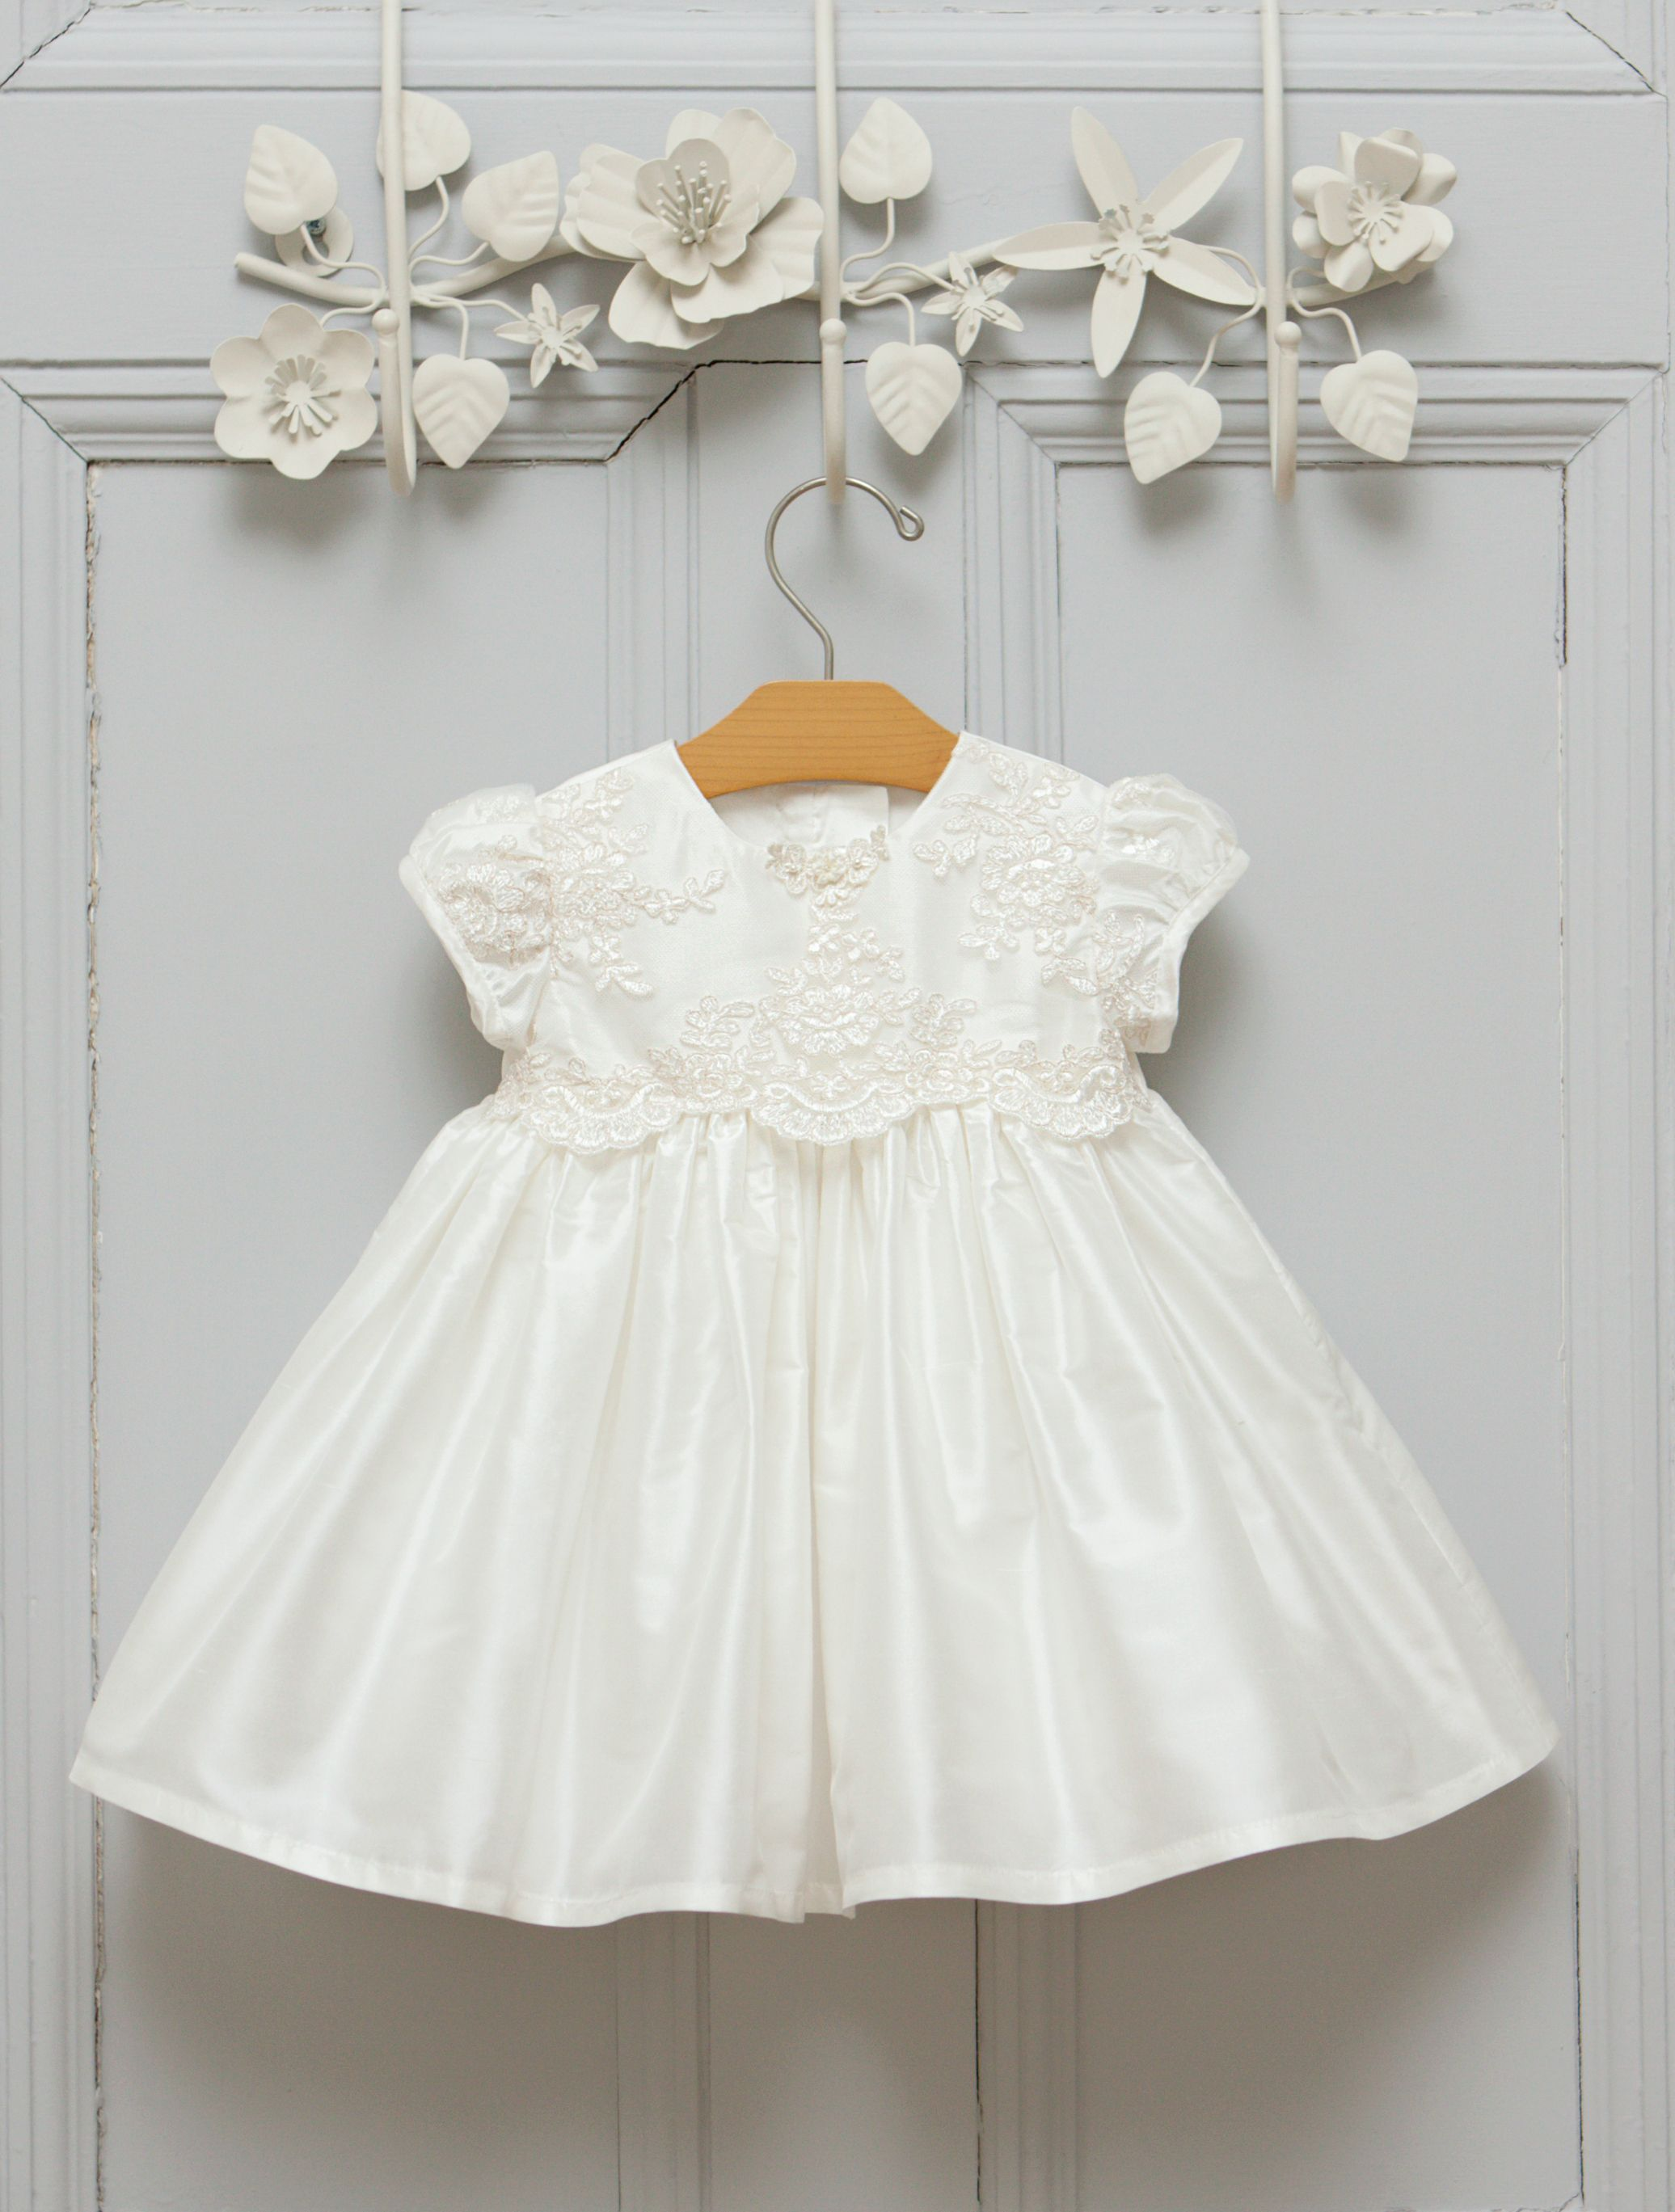 26ccabae11a Beautiful little Christening dress made from silk and lace ♥  #christeningdress #baptismdress #babydress #christening #baptism